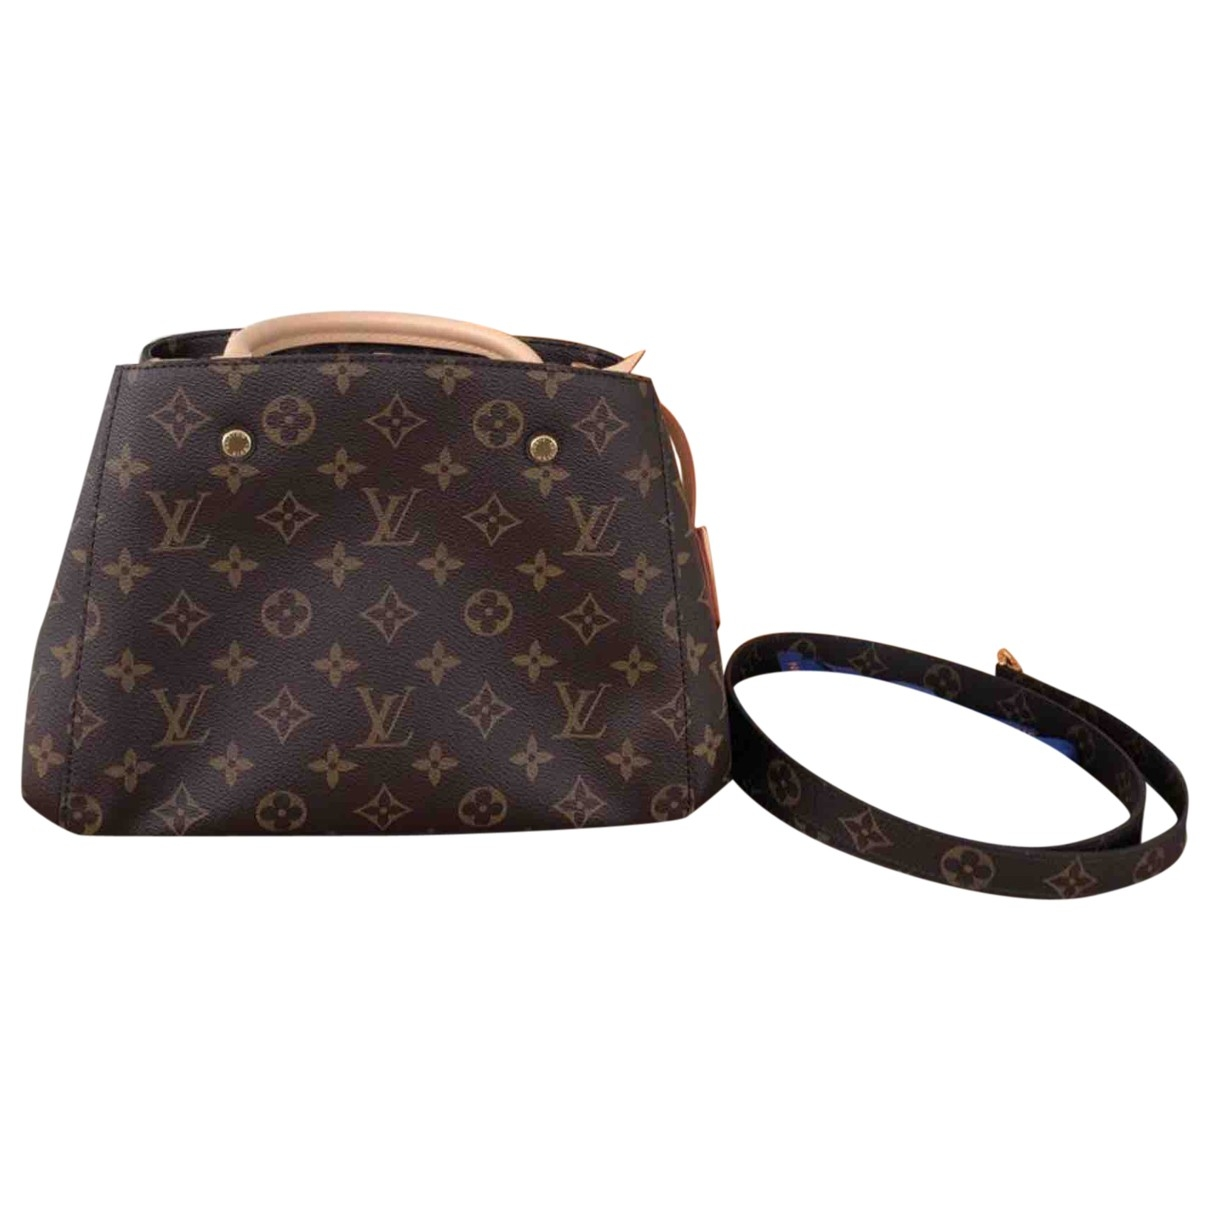 Louis Vuitton Montaigne Handtasche in  Braun Leinen